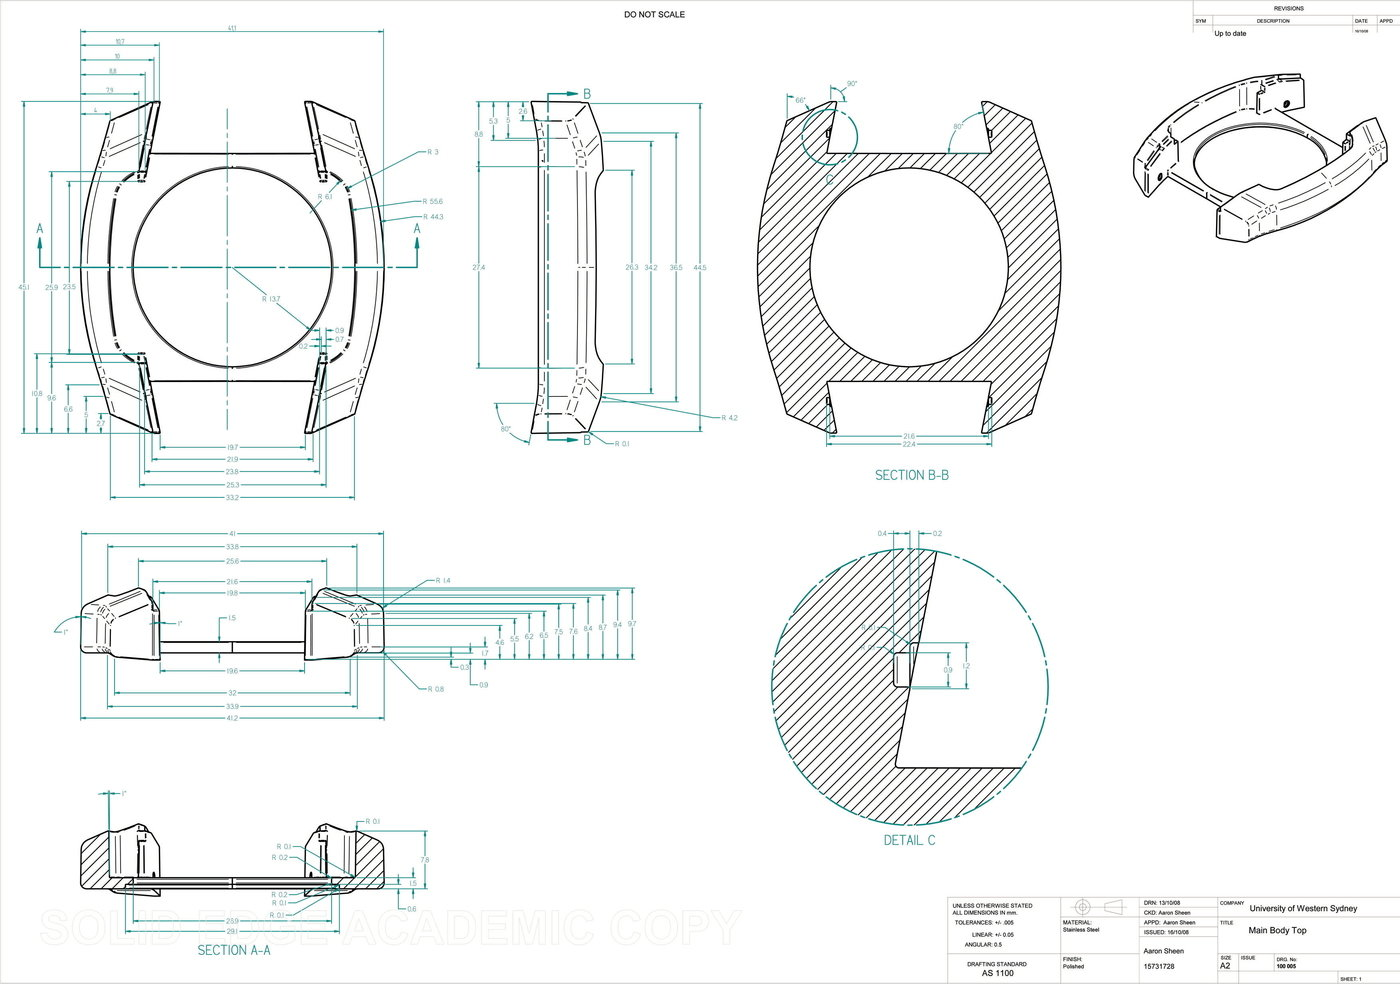 Engineering Drawing Examples By Aaron Sheen At Coroflot